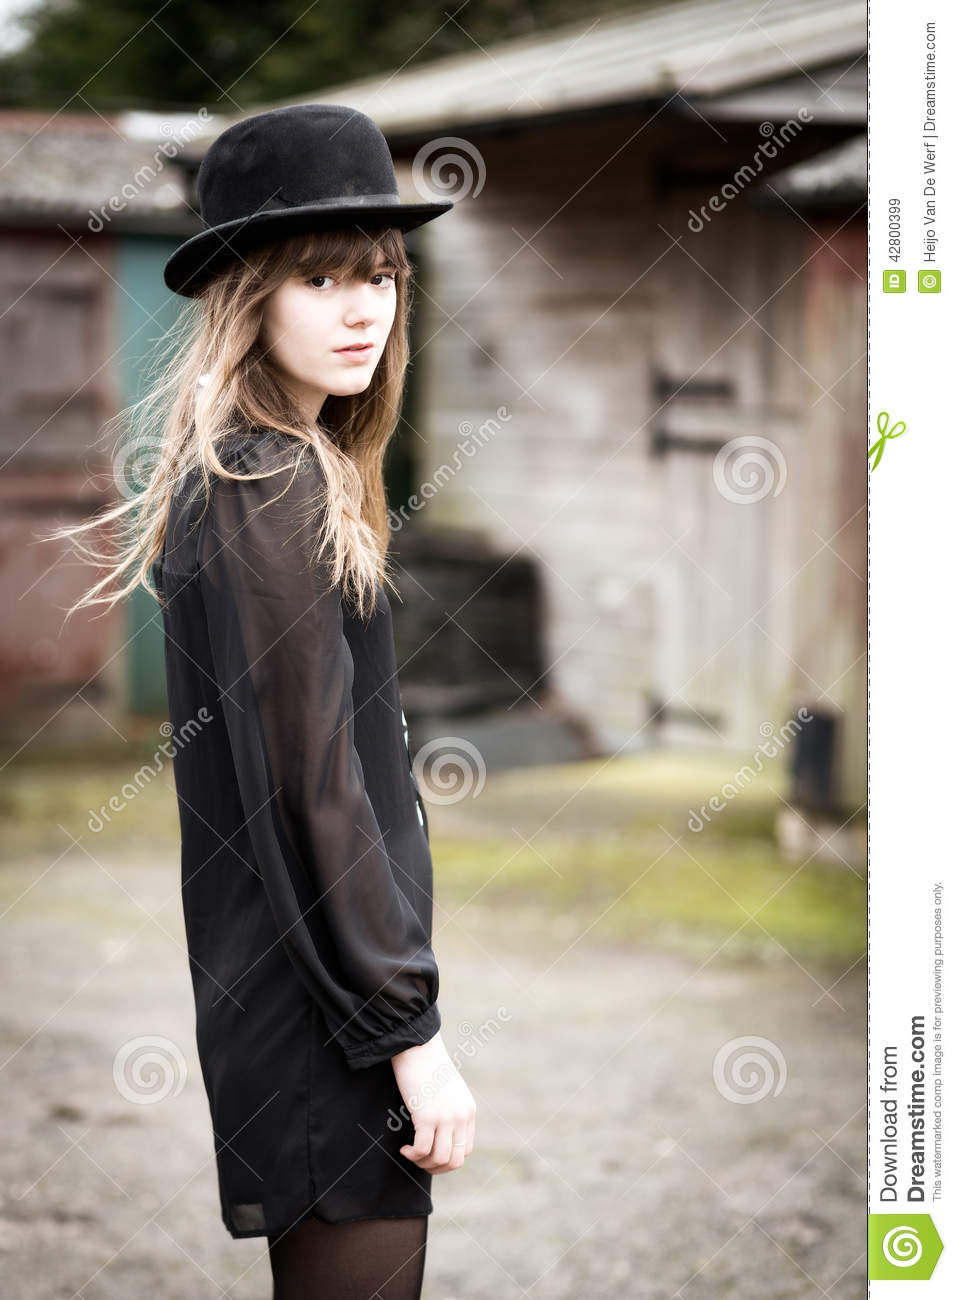 Beautiful Woman Wearing Bowler Hat Stock Image - Image of black ... 81deb60adb87